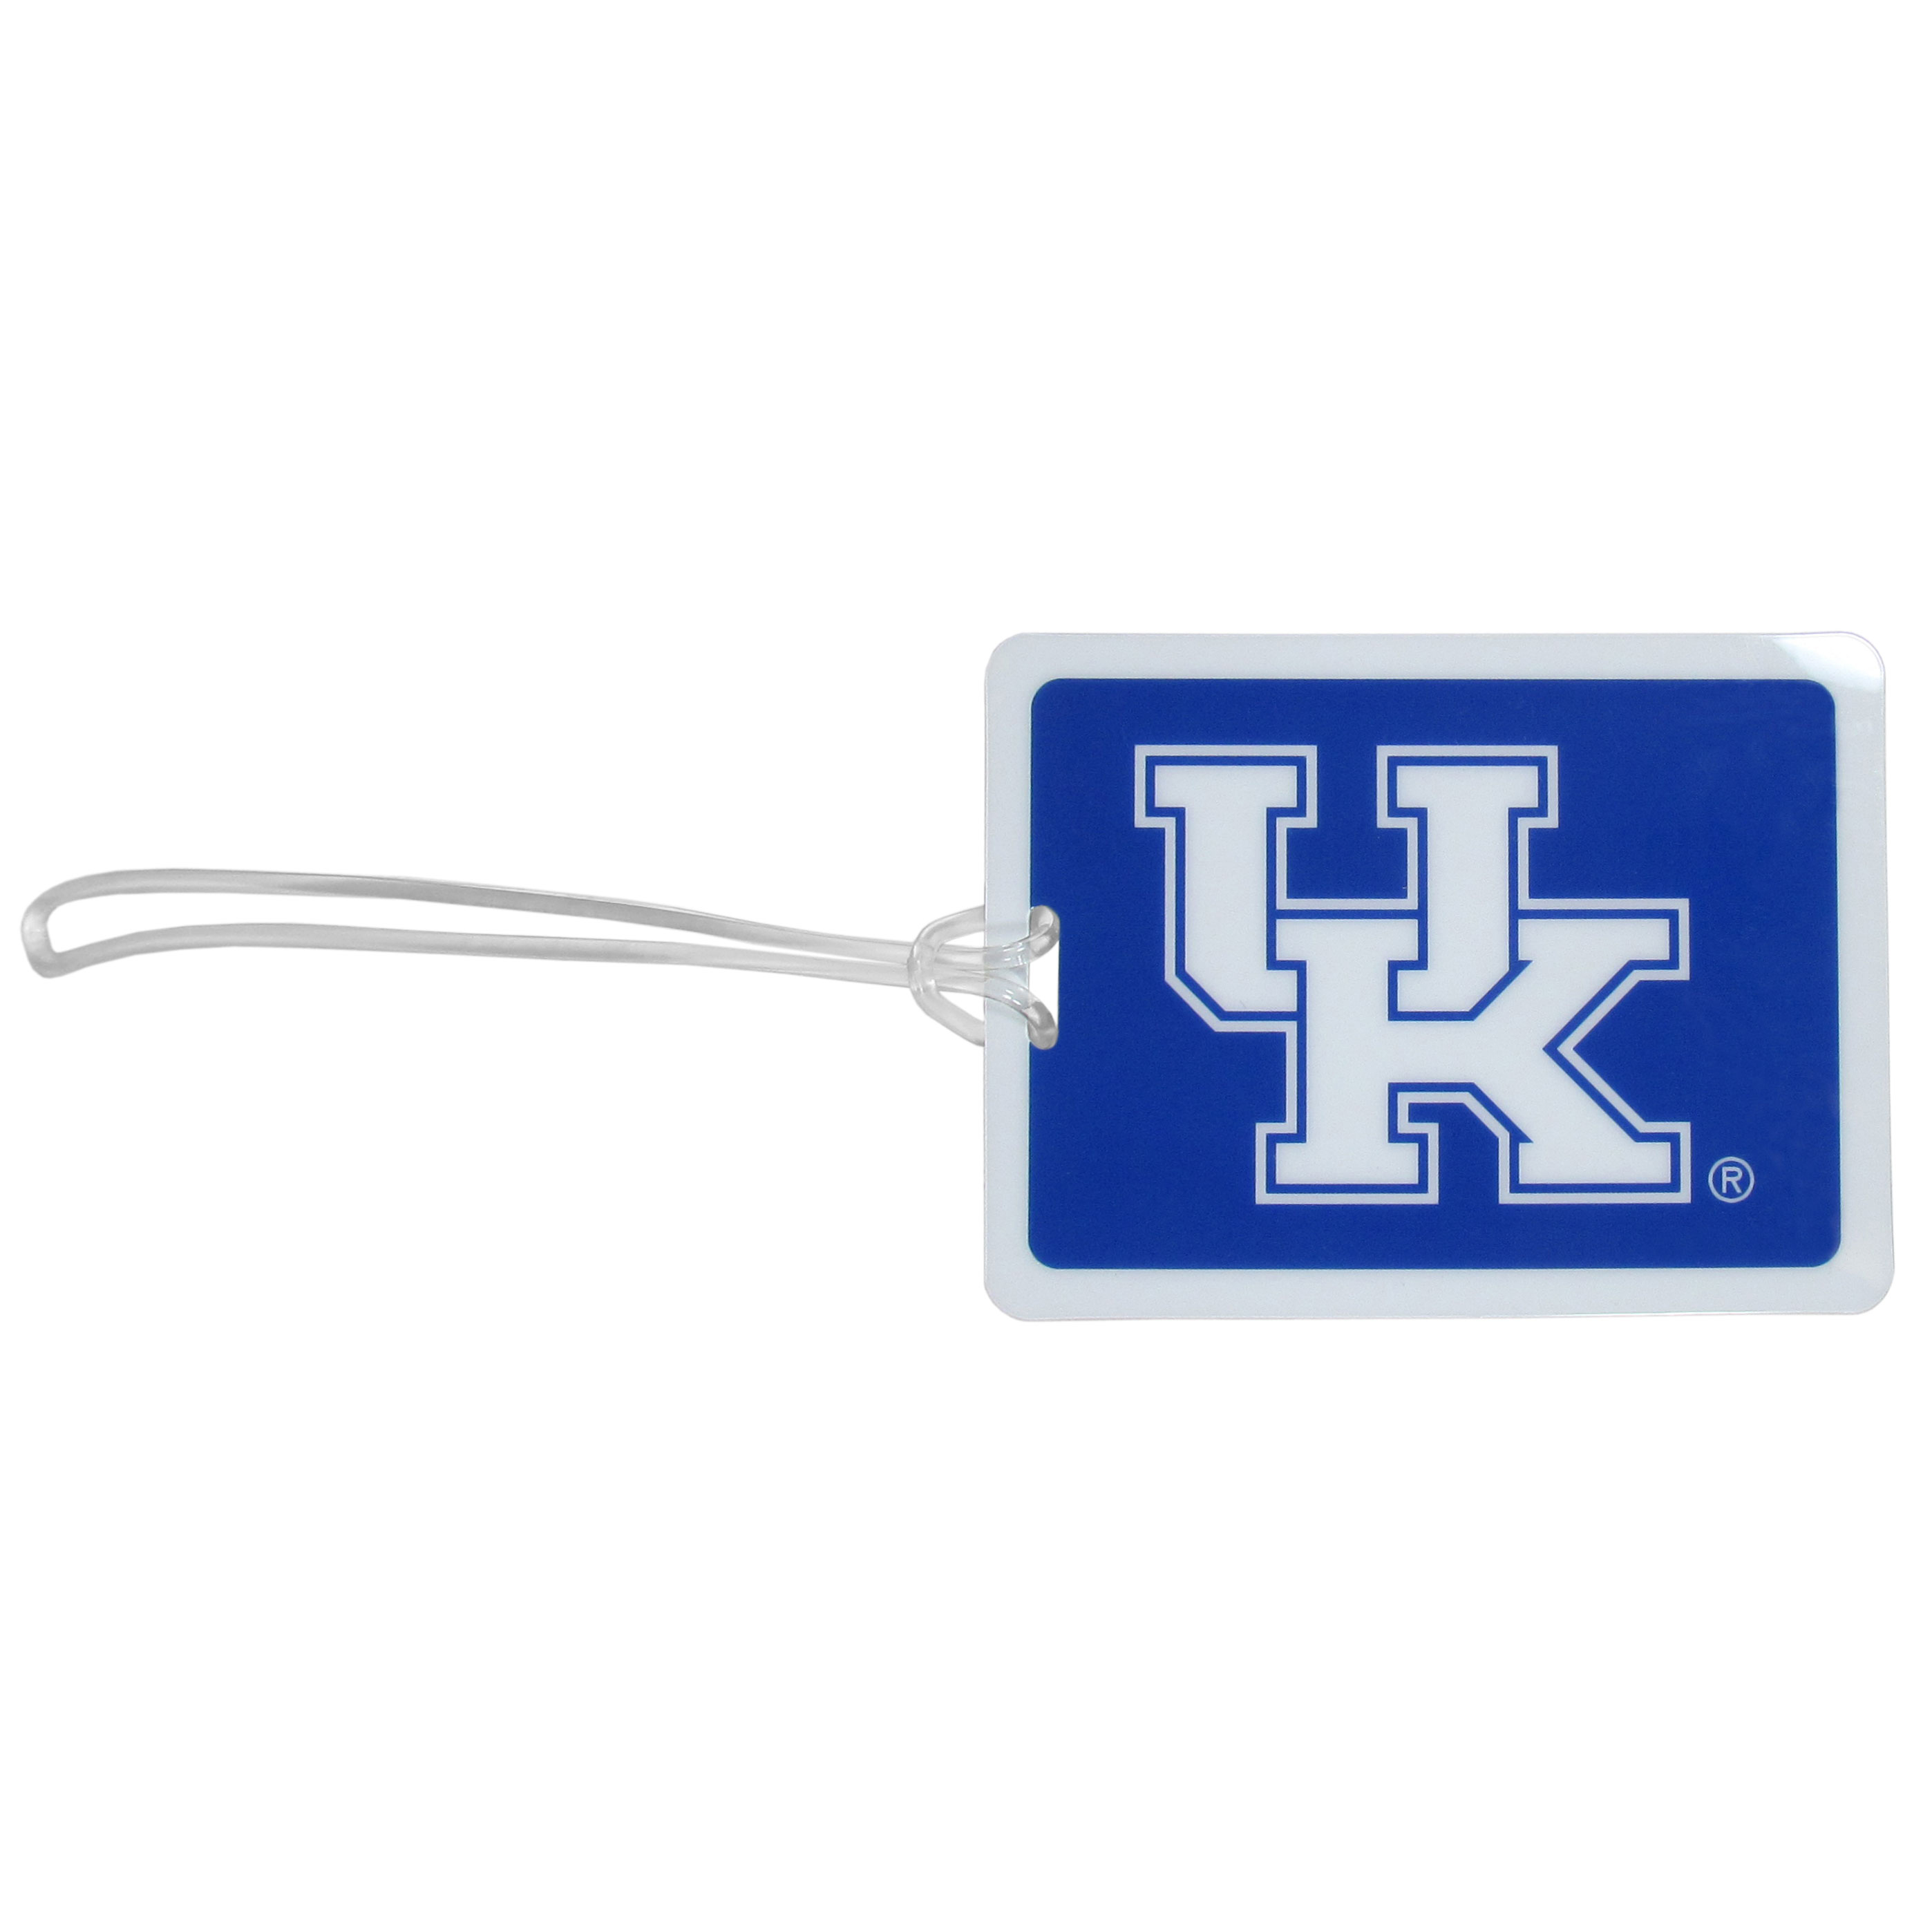 Kentucky Wildcats Vinyl Luggage Tag - Tired of trying to spot your suitcase or bag in a sea of luggage? Try our large and colorful Kentucky Wildcats luggage tag set. The tag is 4x3 inches and has a 5 inch cord to attach it easily to your bags, backpacks or luggage. The front of the tag features the team logo in a bright, team colored background and you can write you name, address and phone number on the back of the tag.